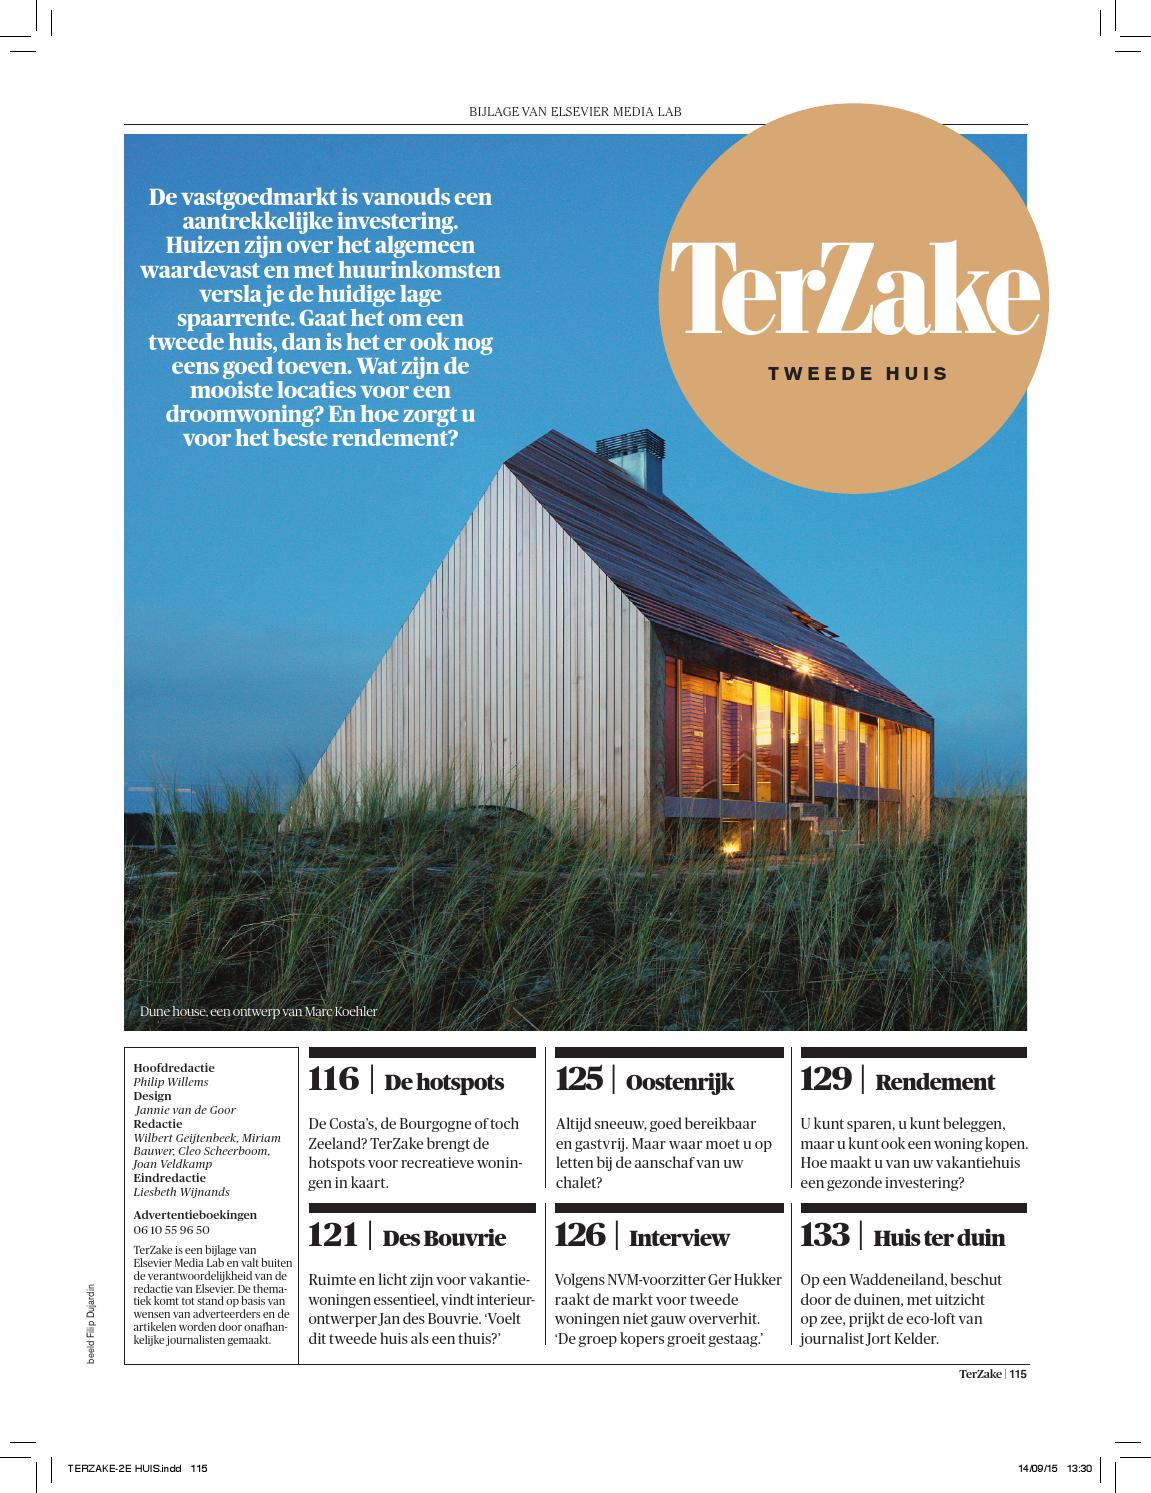 Terzake tweede huis by reed business issuu for Dujardin willems